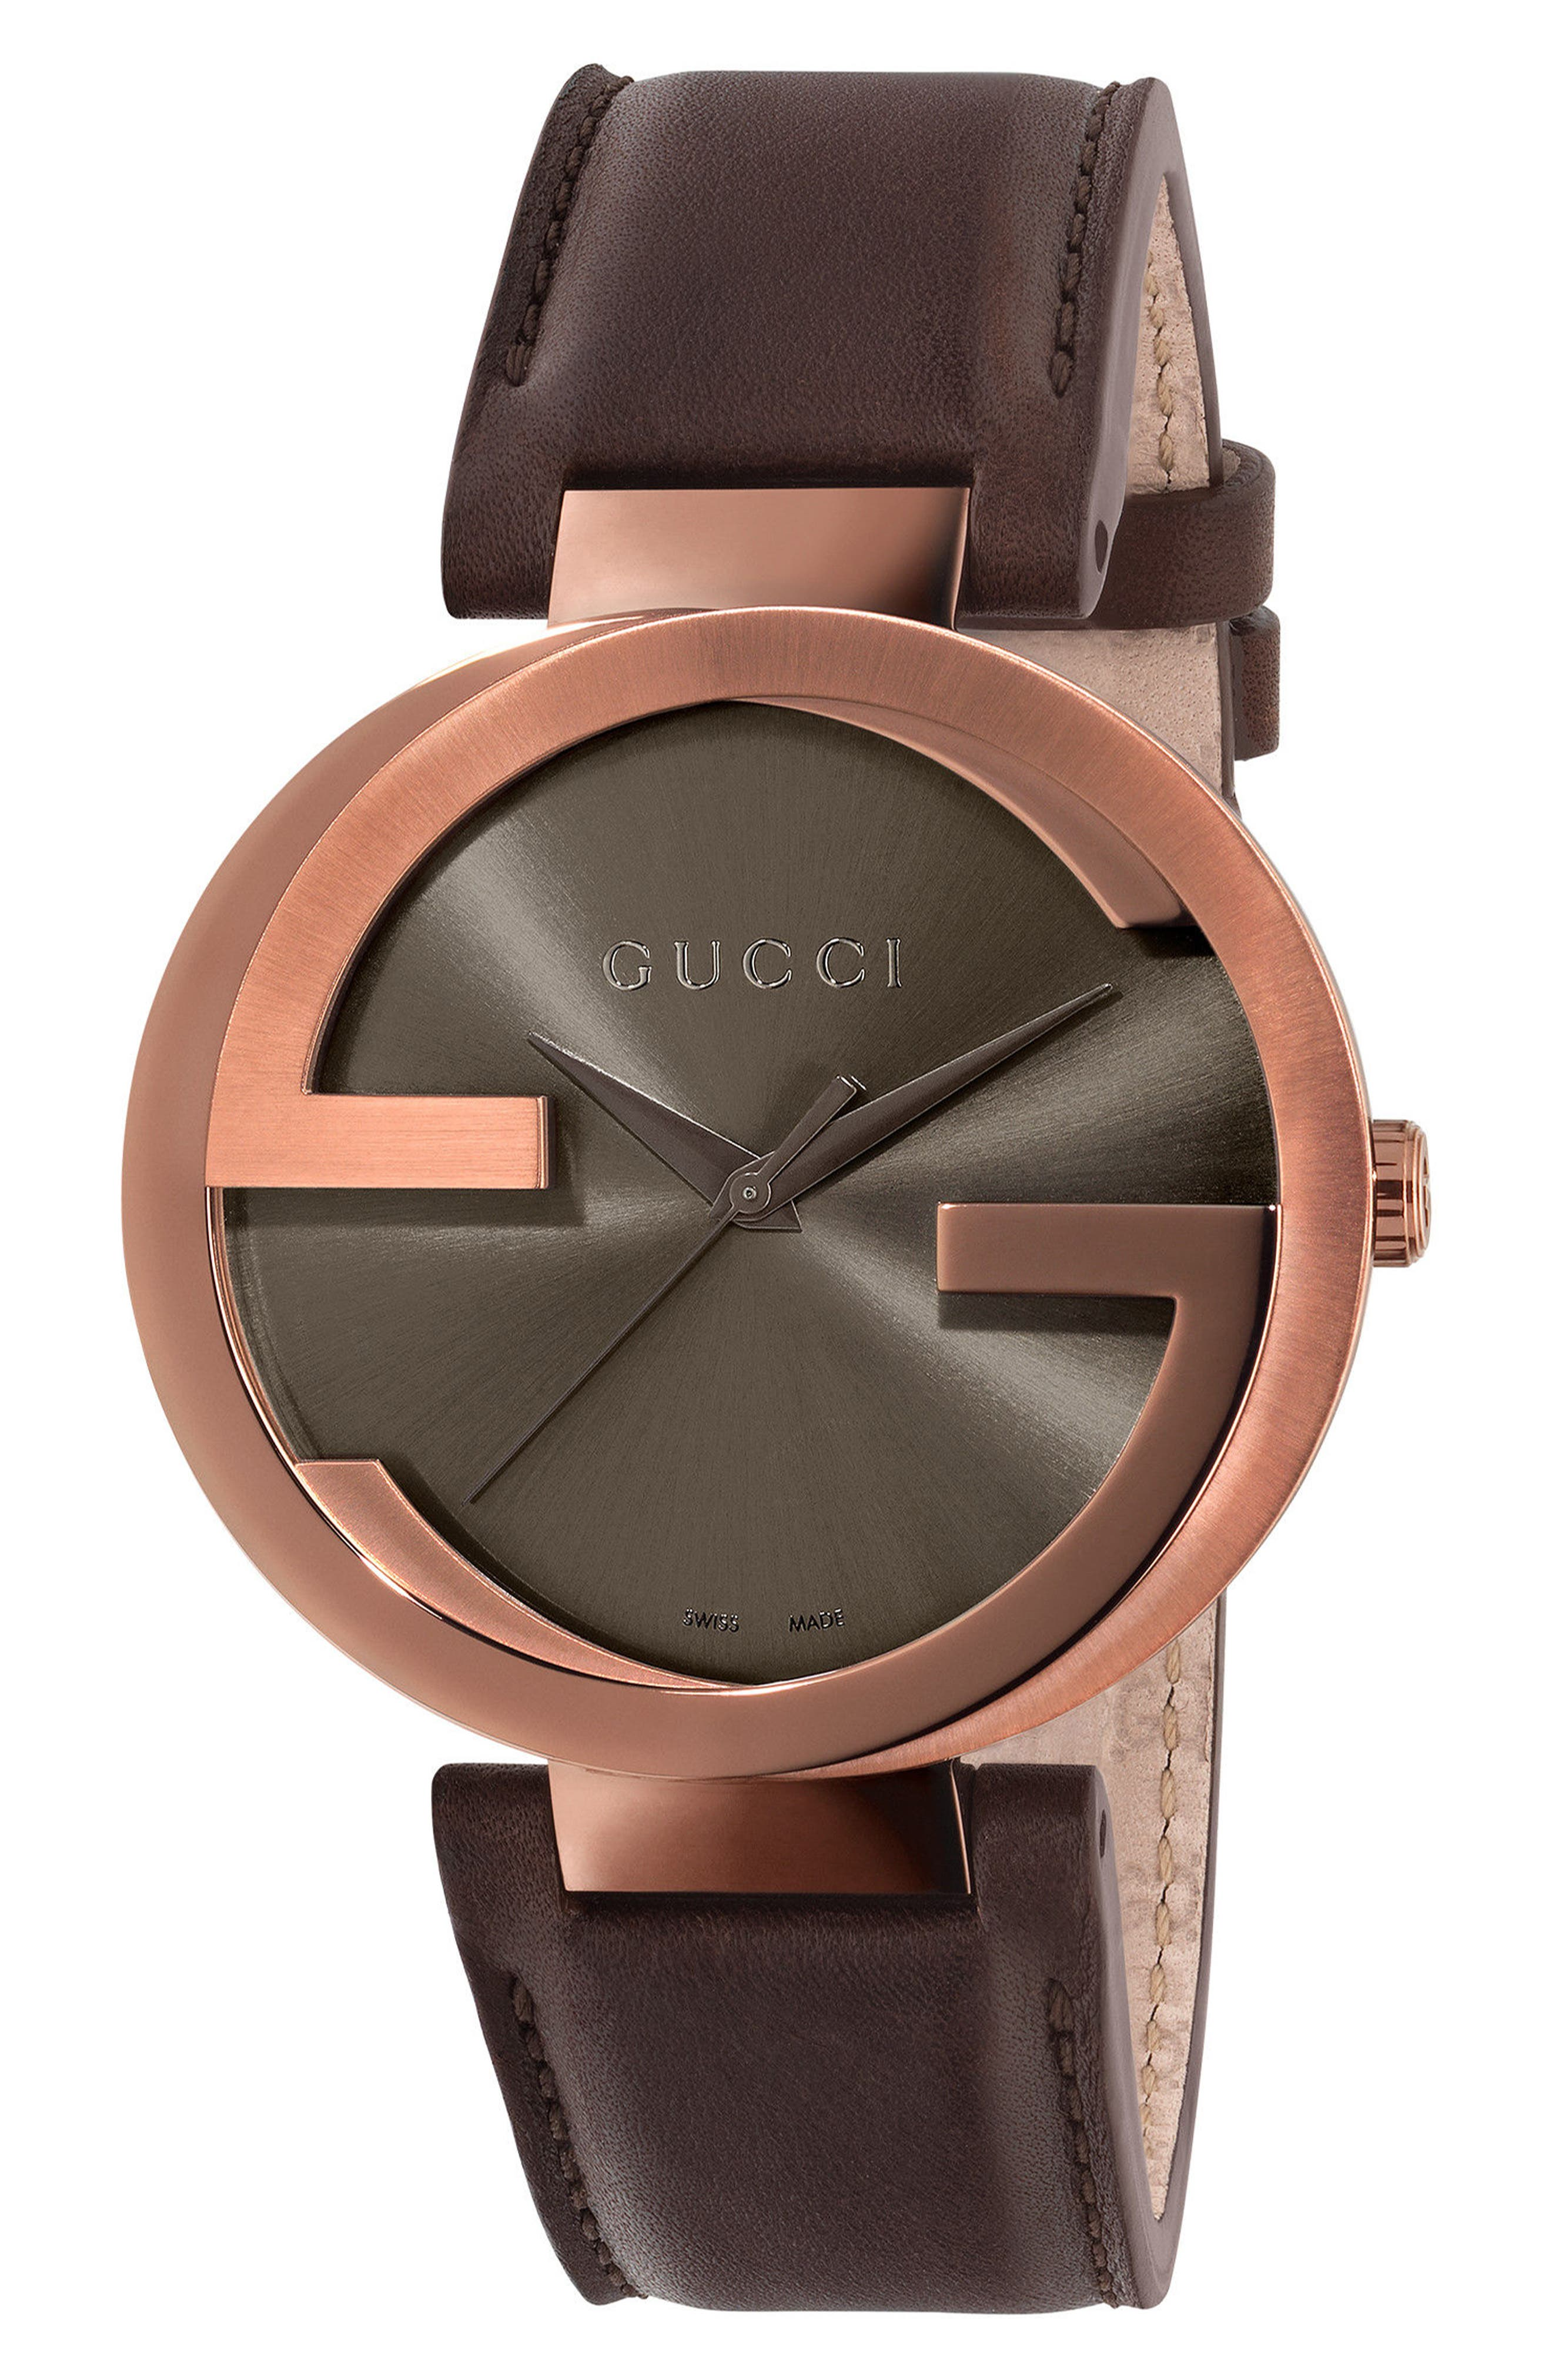 GUCCI Interlocking Leather Strap Watch, 42mm